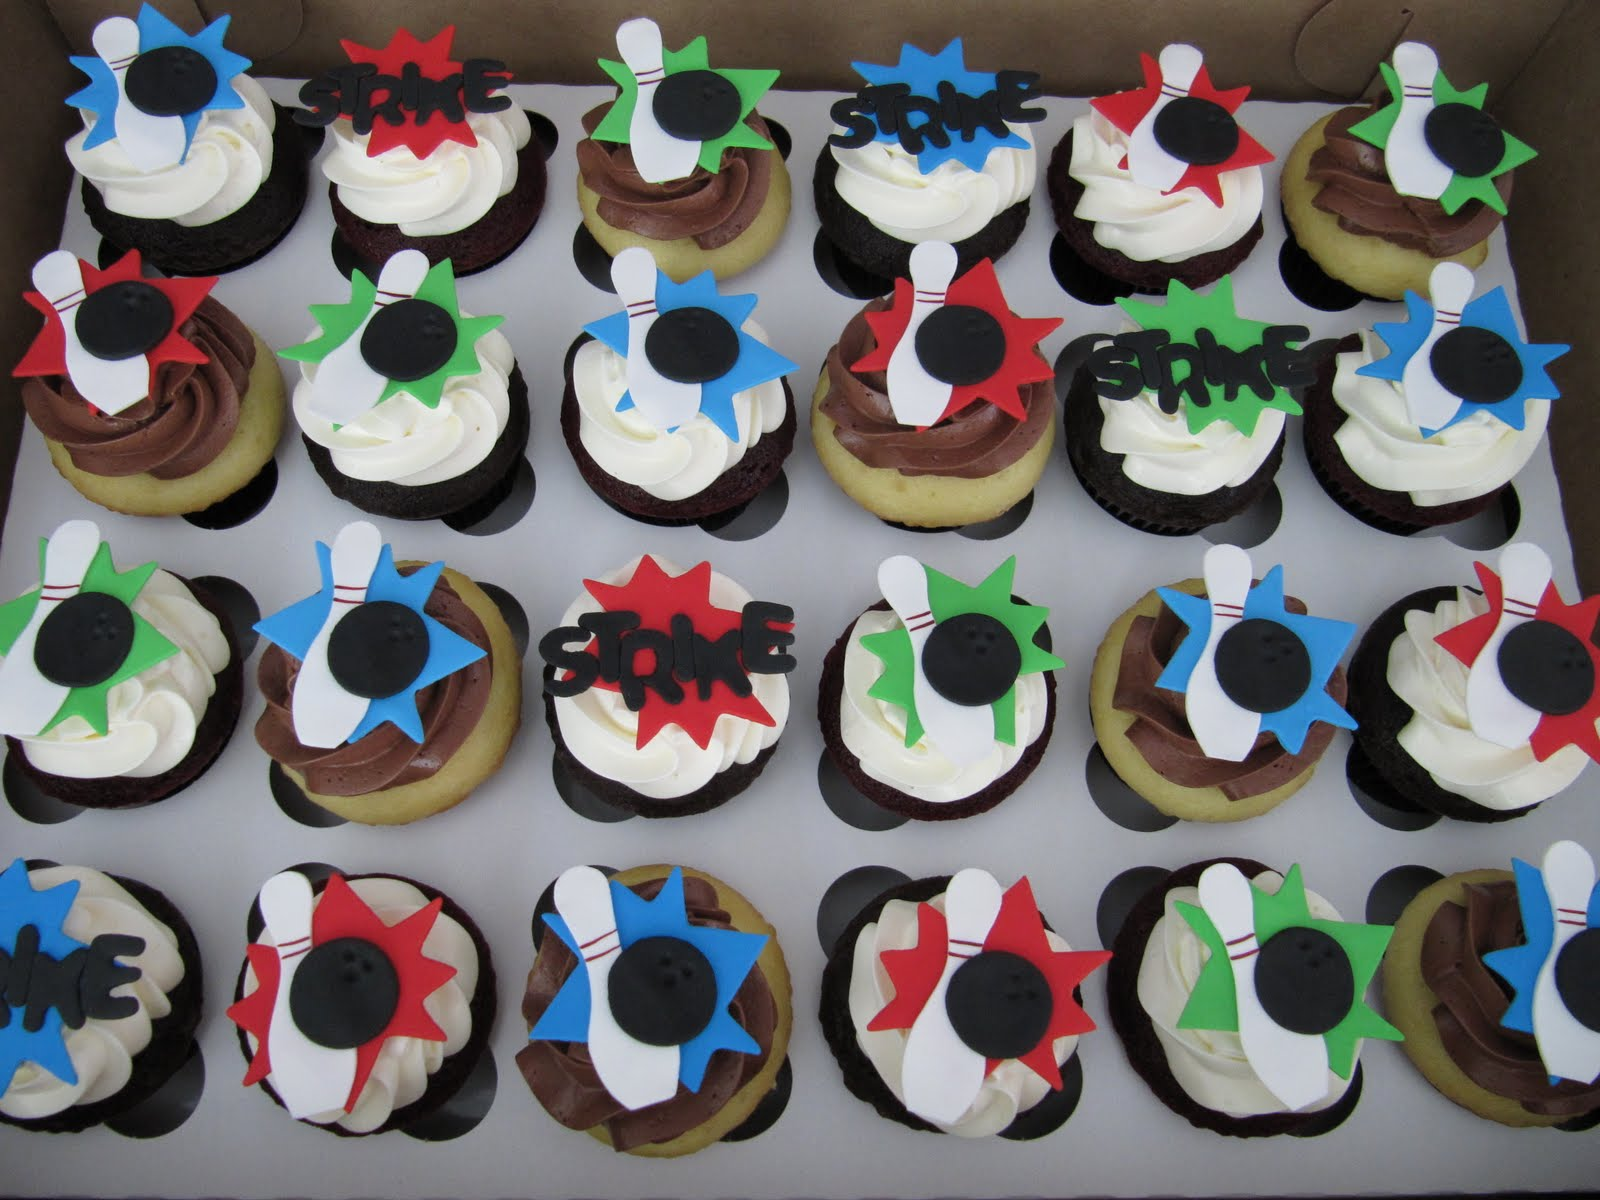 Emily S Delights Bowling Cupcakes 06 2010